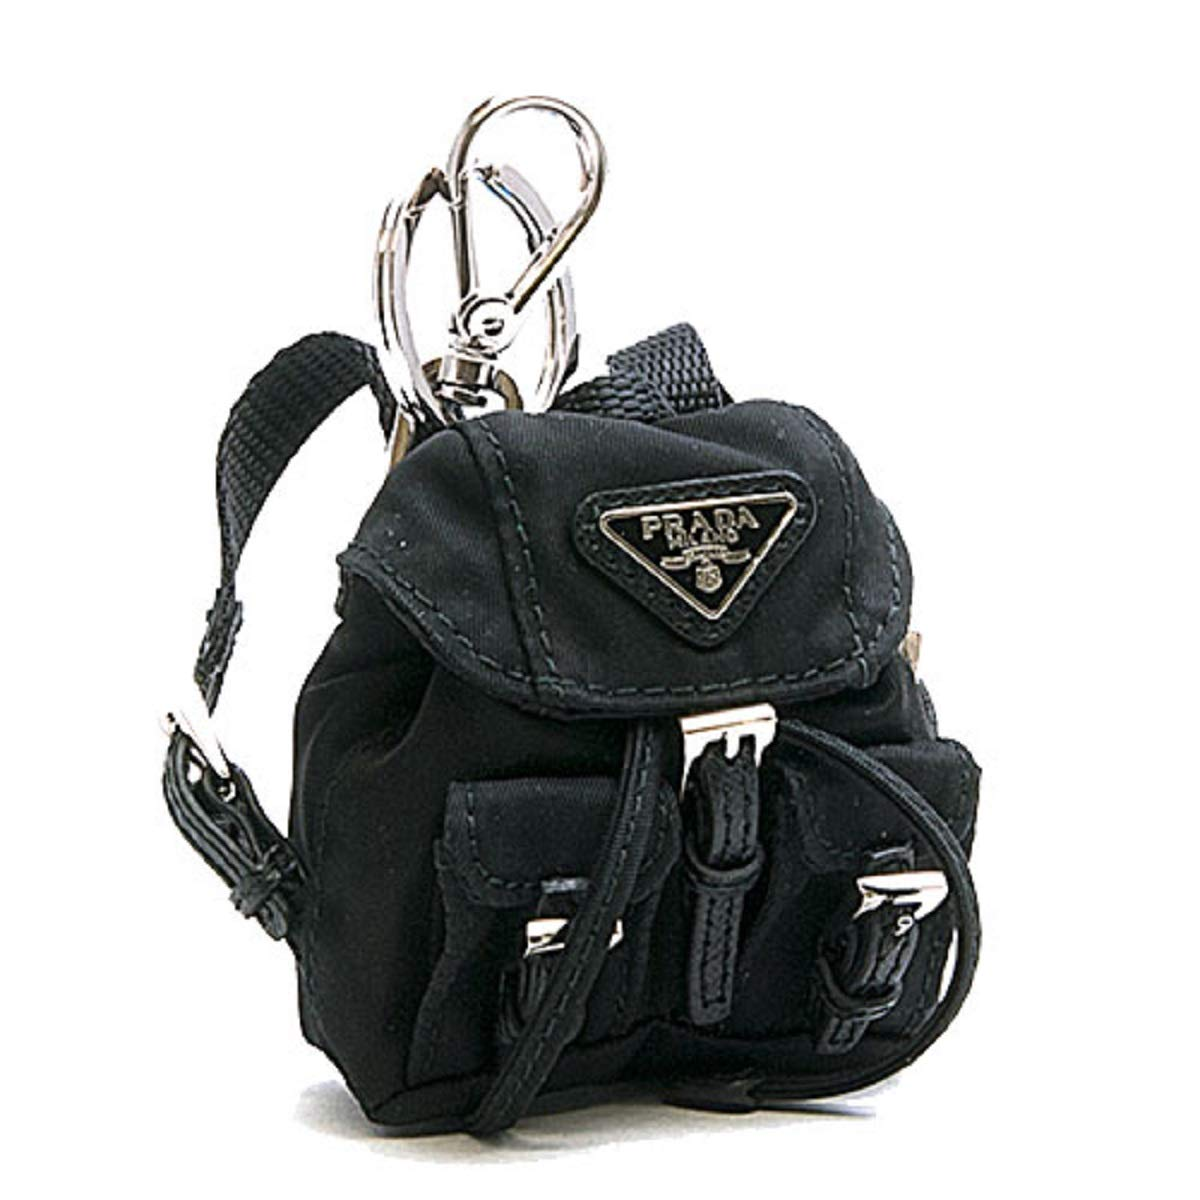 Prada Steel key ring with black nylon iconic prada backpack coin purse Key Chain 1TT010